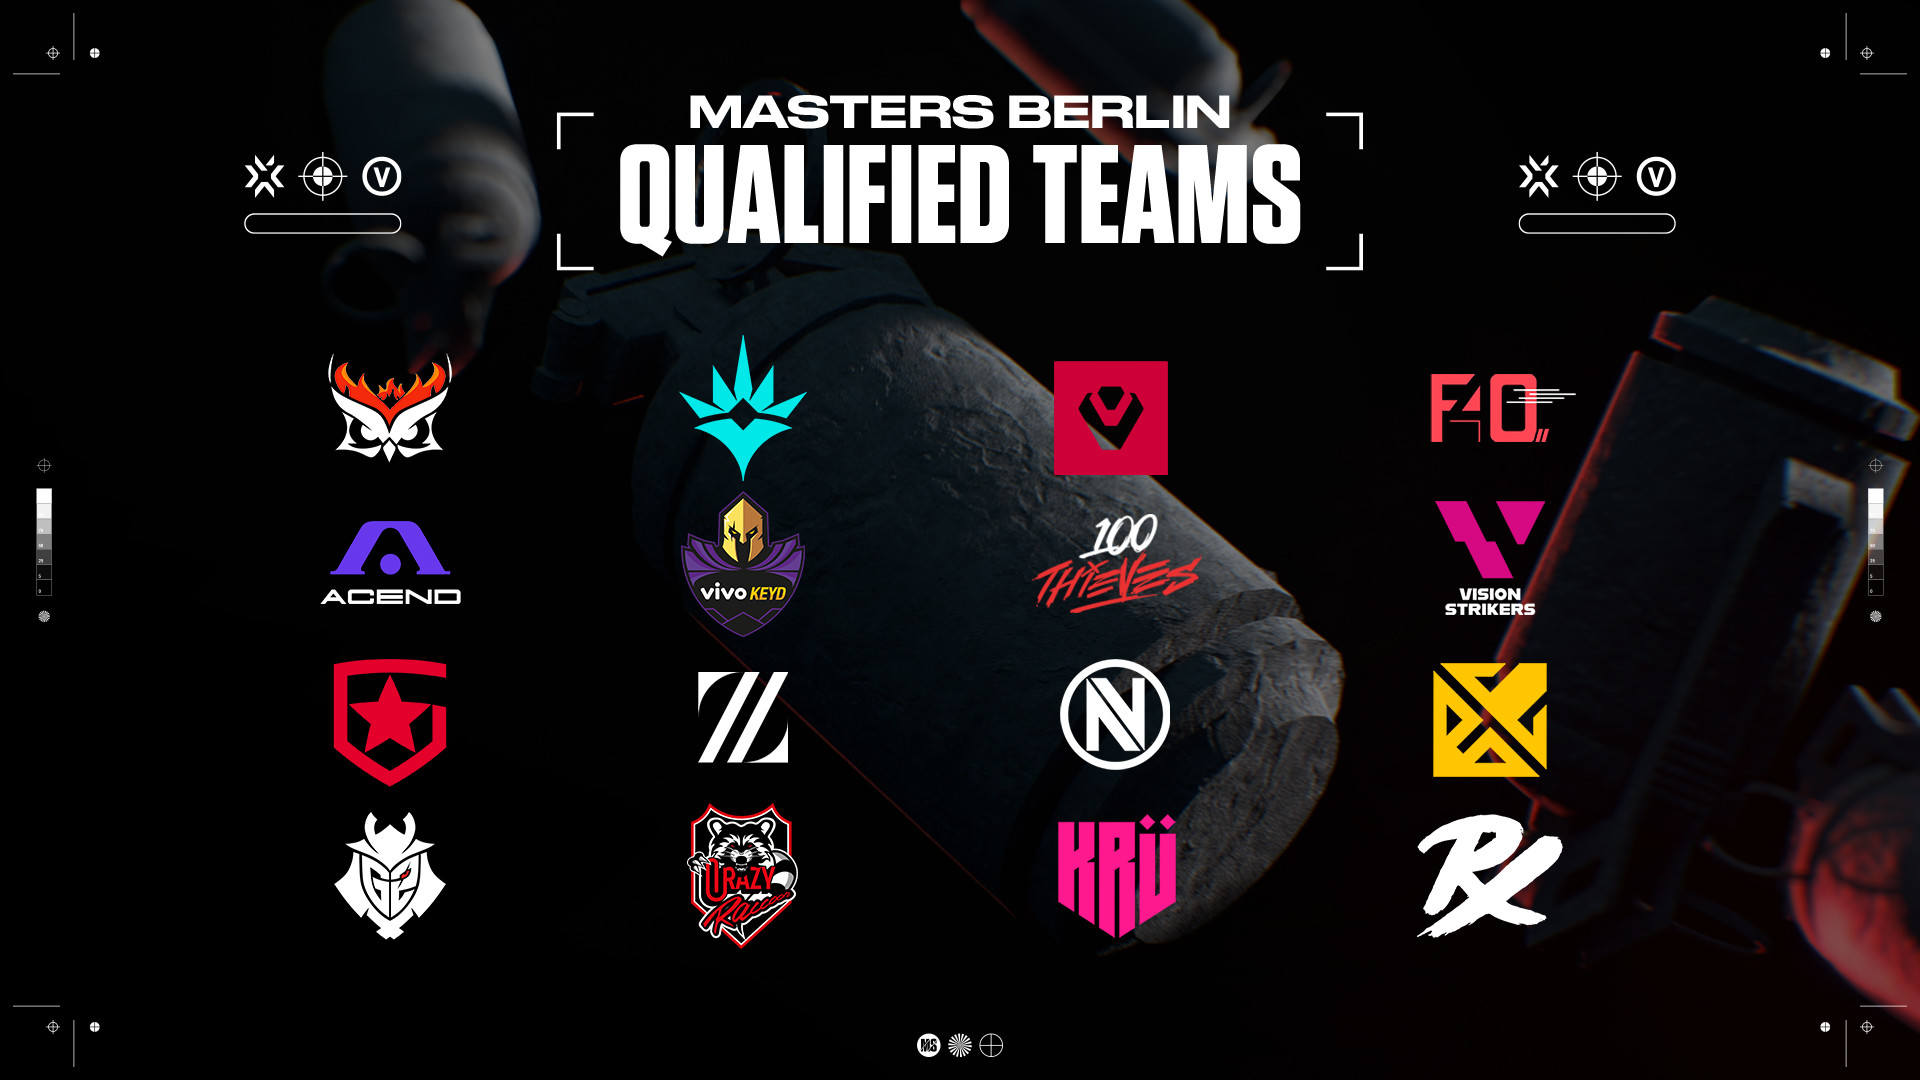 This graphic shows the 16 participants out of 7 regions for Masters Berlin